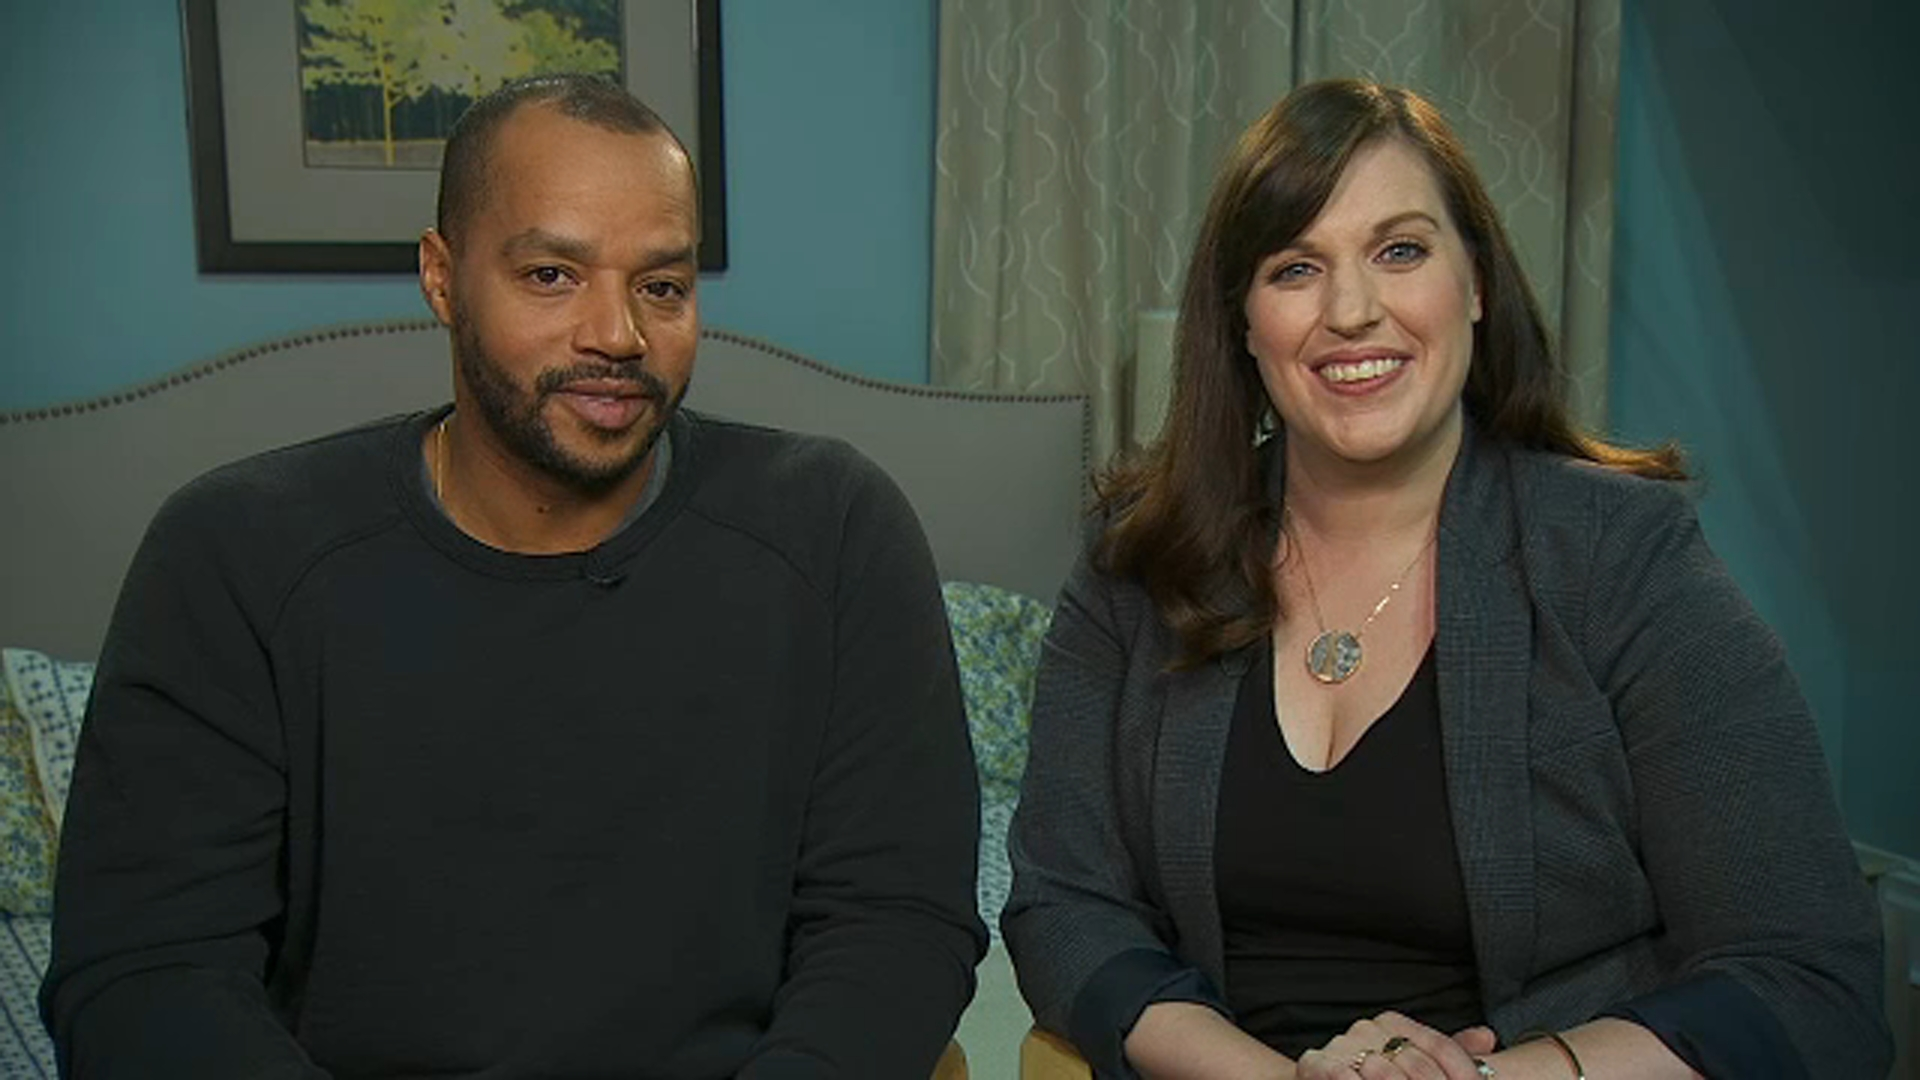 Allison Tolman and Donald Faison talk about their characters on 'Emergence'